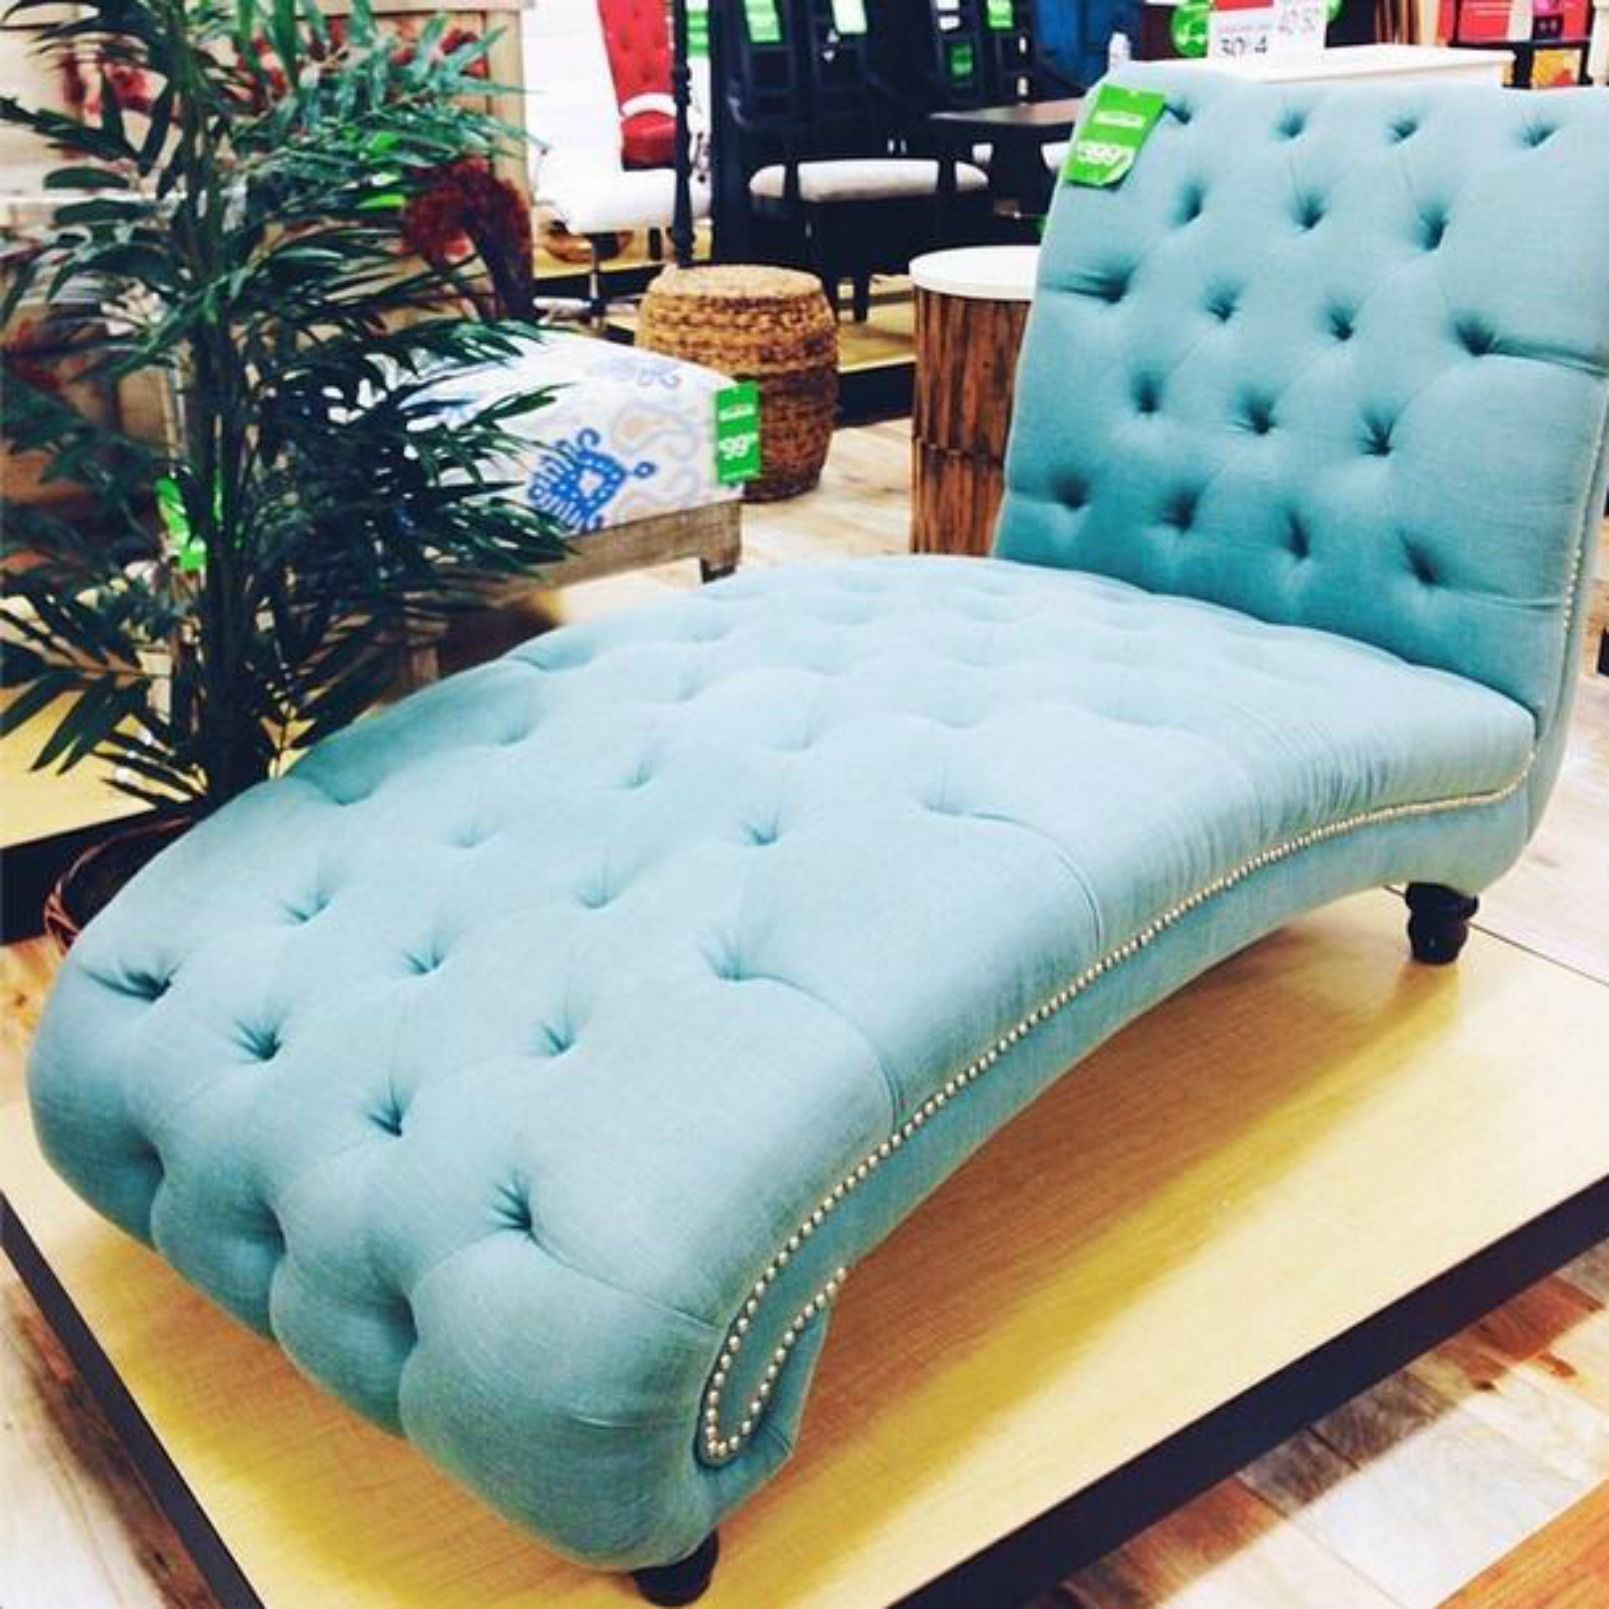 Home Goods Finds (Blue Chaise) Private Practice Emporium